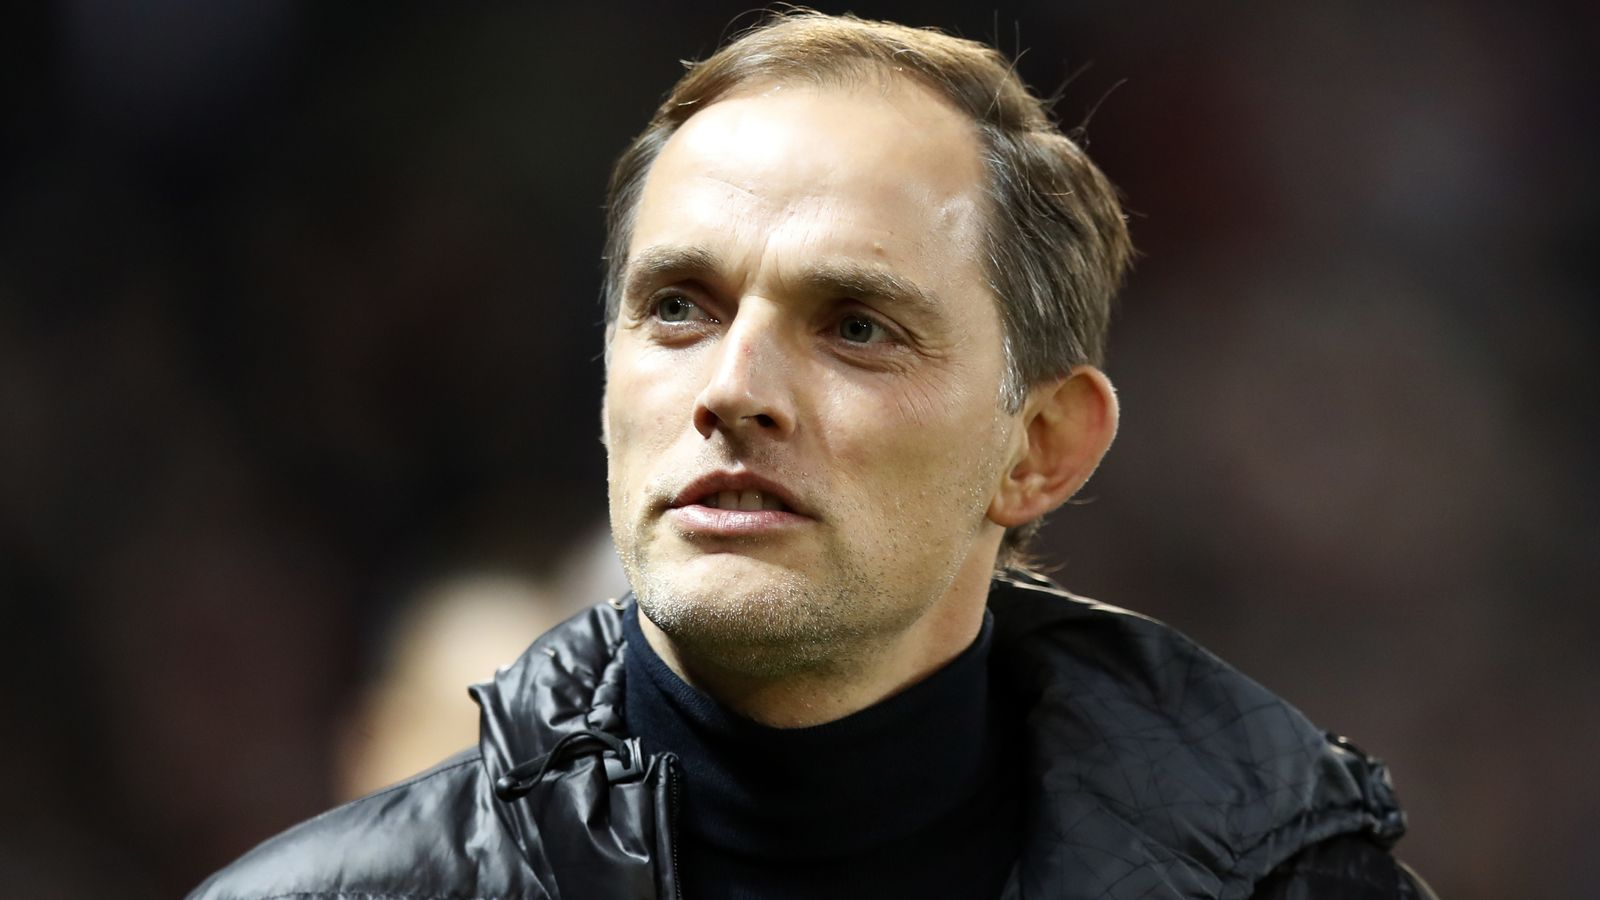 Thomas Tuchel flying into UK ahead of Chelsea head coach appointment - Sky Sports